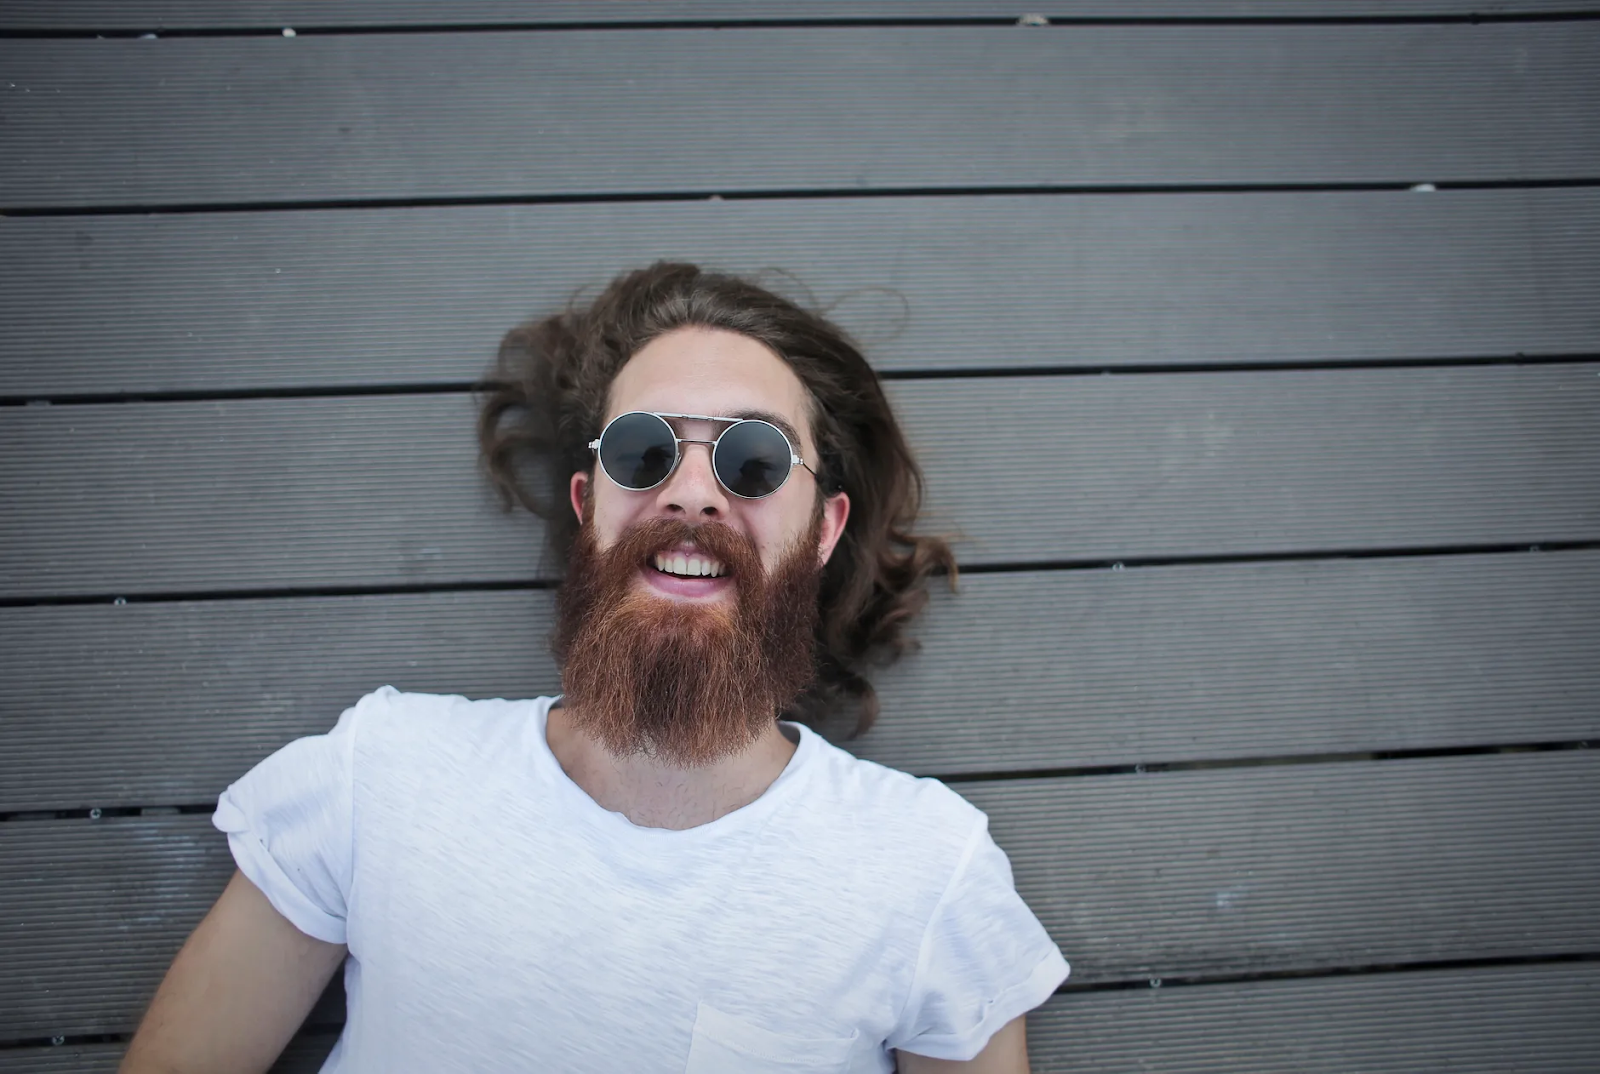 A bearded man wearing sunglasses laughs up at the sky as he lies across gray wooden planks